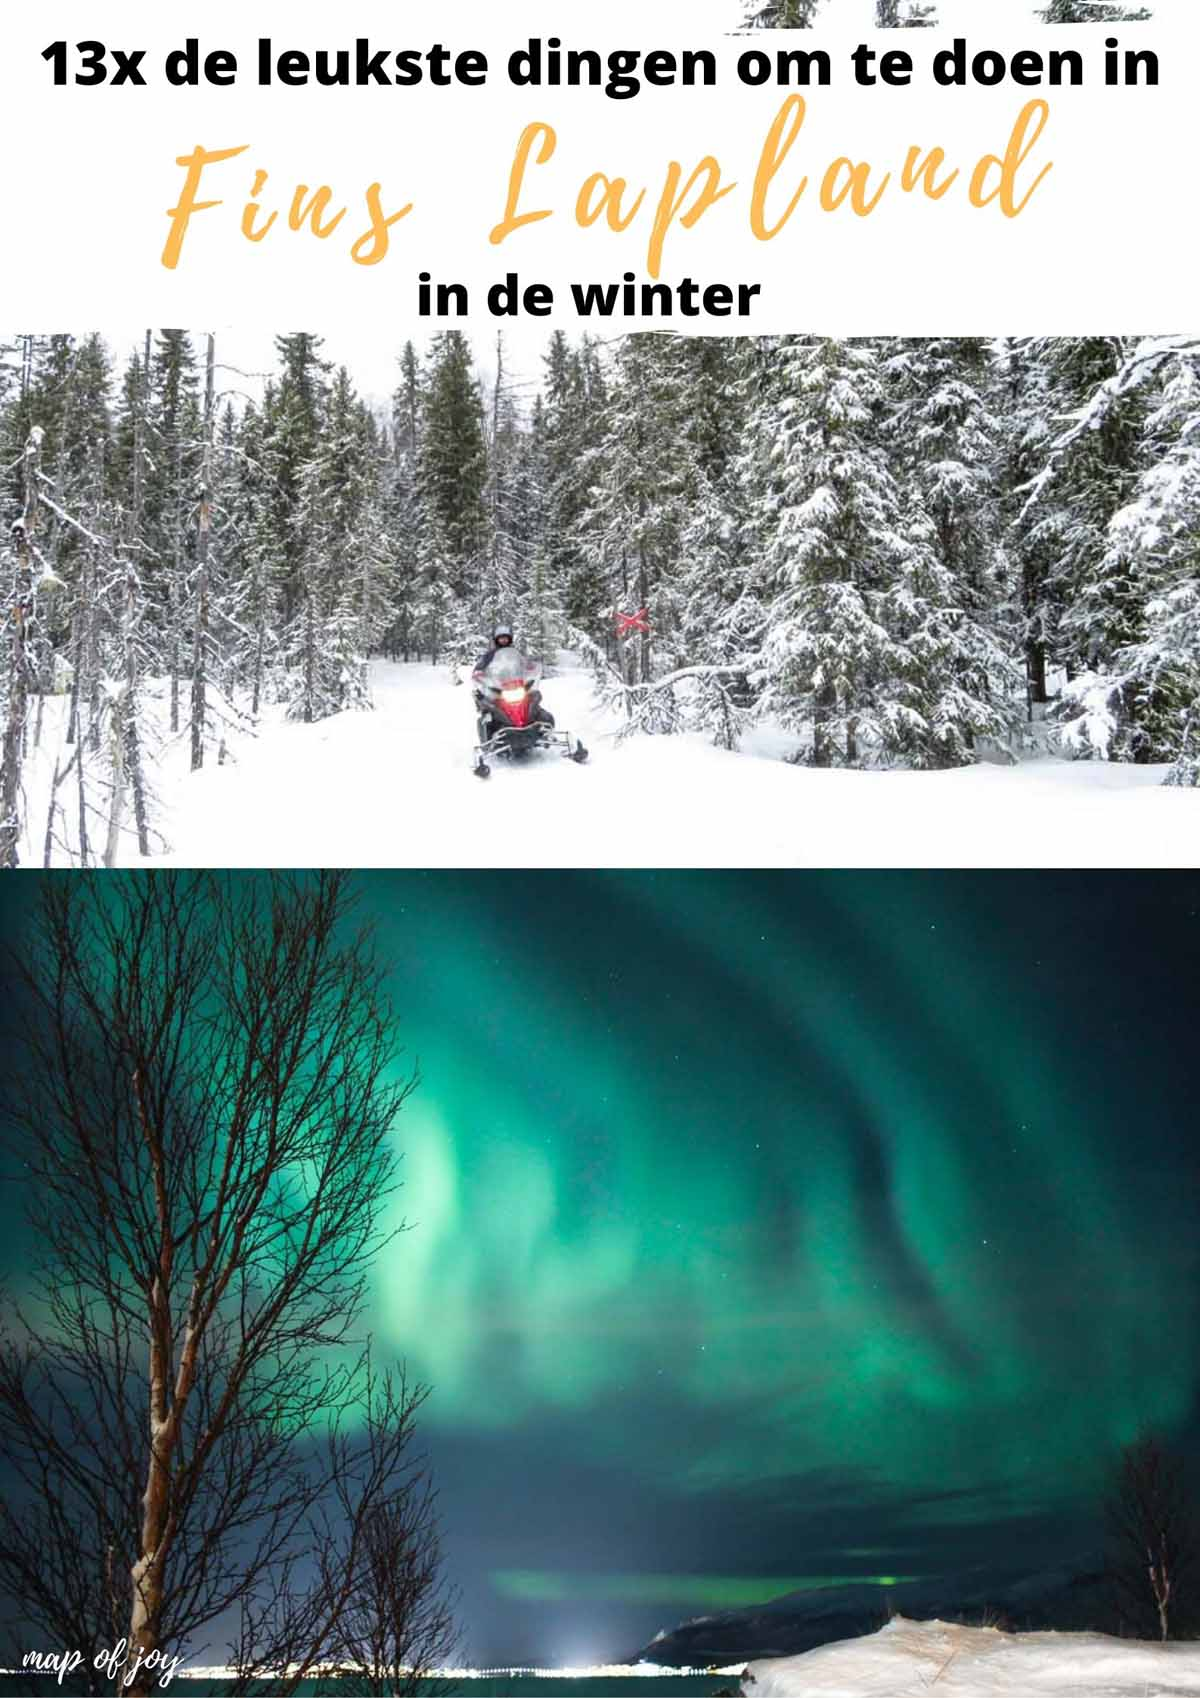 13x de leukste dingen om te doen in Fins Lapland in de winter - Map of Joy